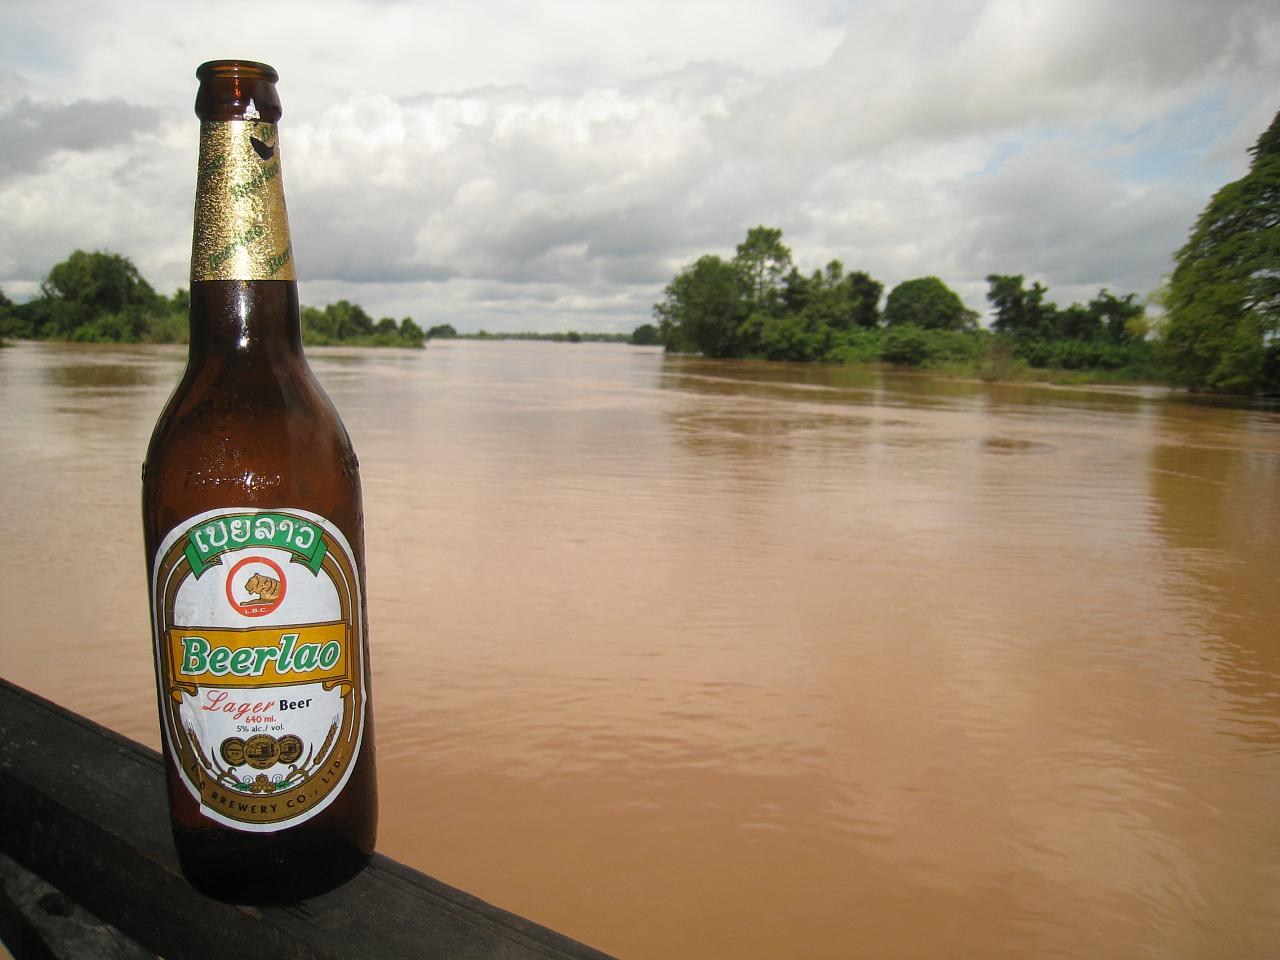 A cold beerlao is enjoyed alongside the slow-moving Mekong waters.